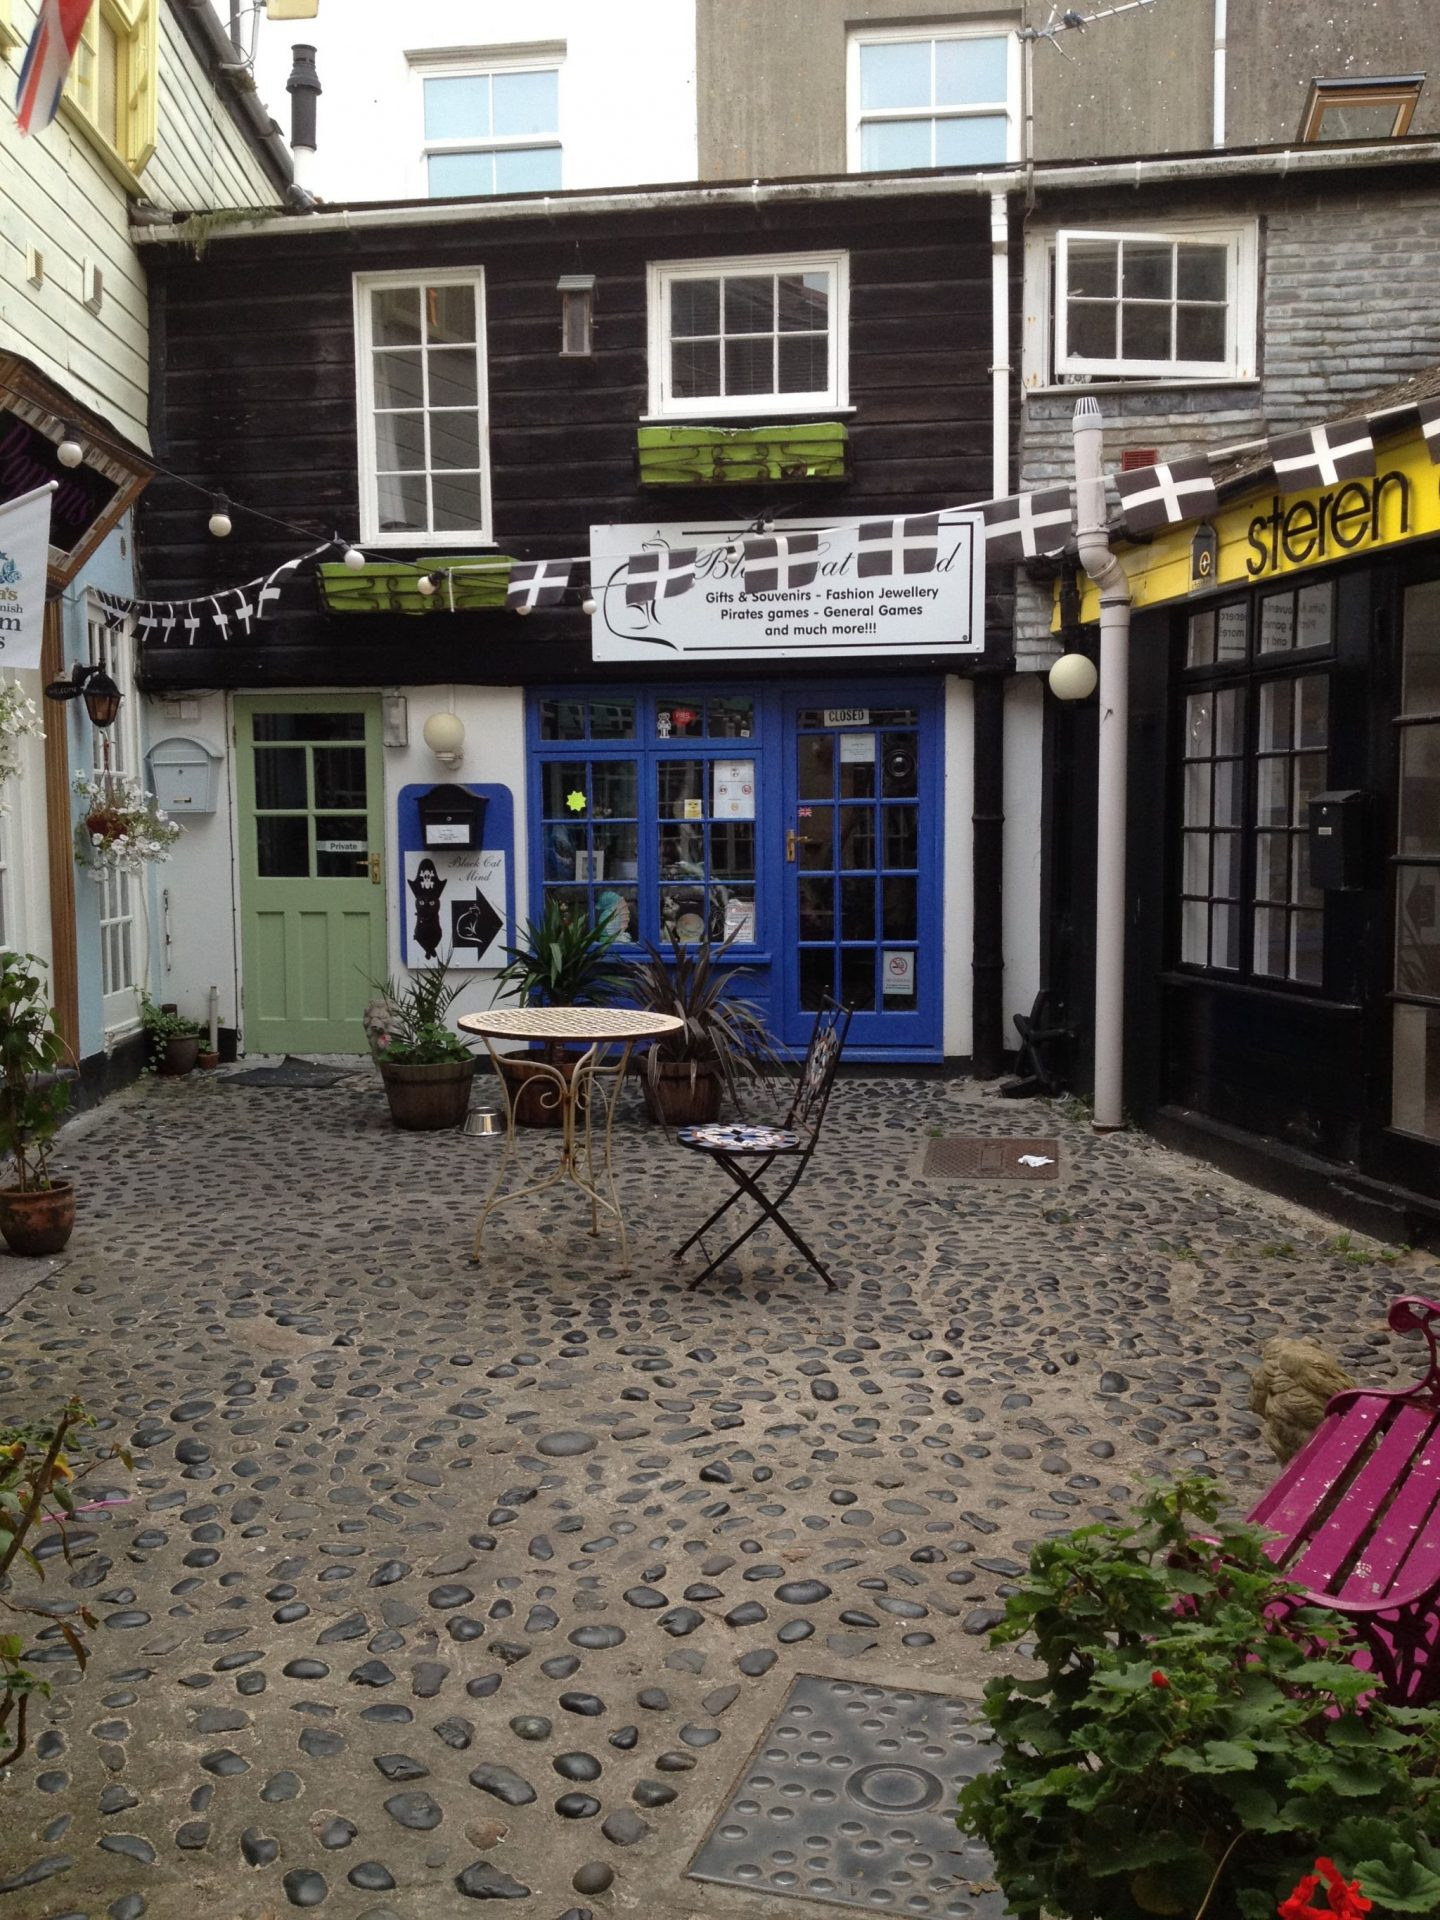 Courtyard in St Ives, Cornwall